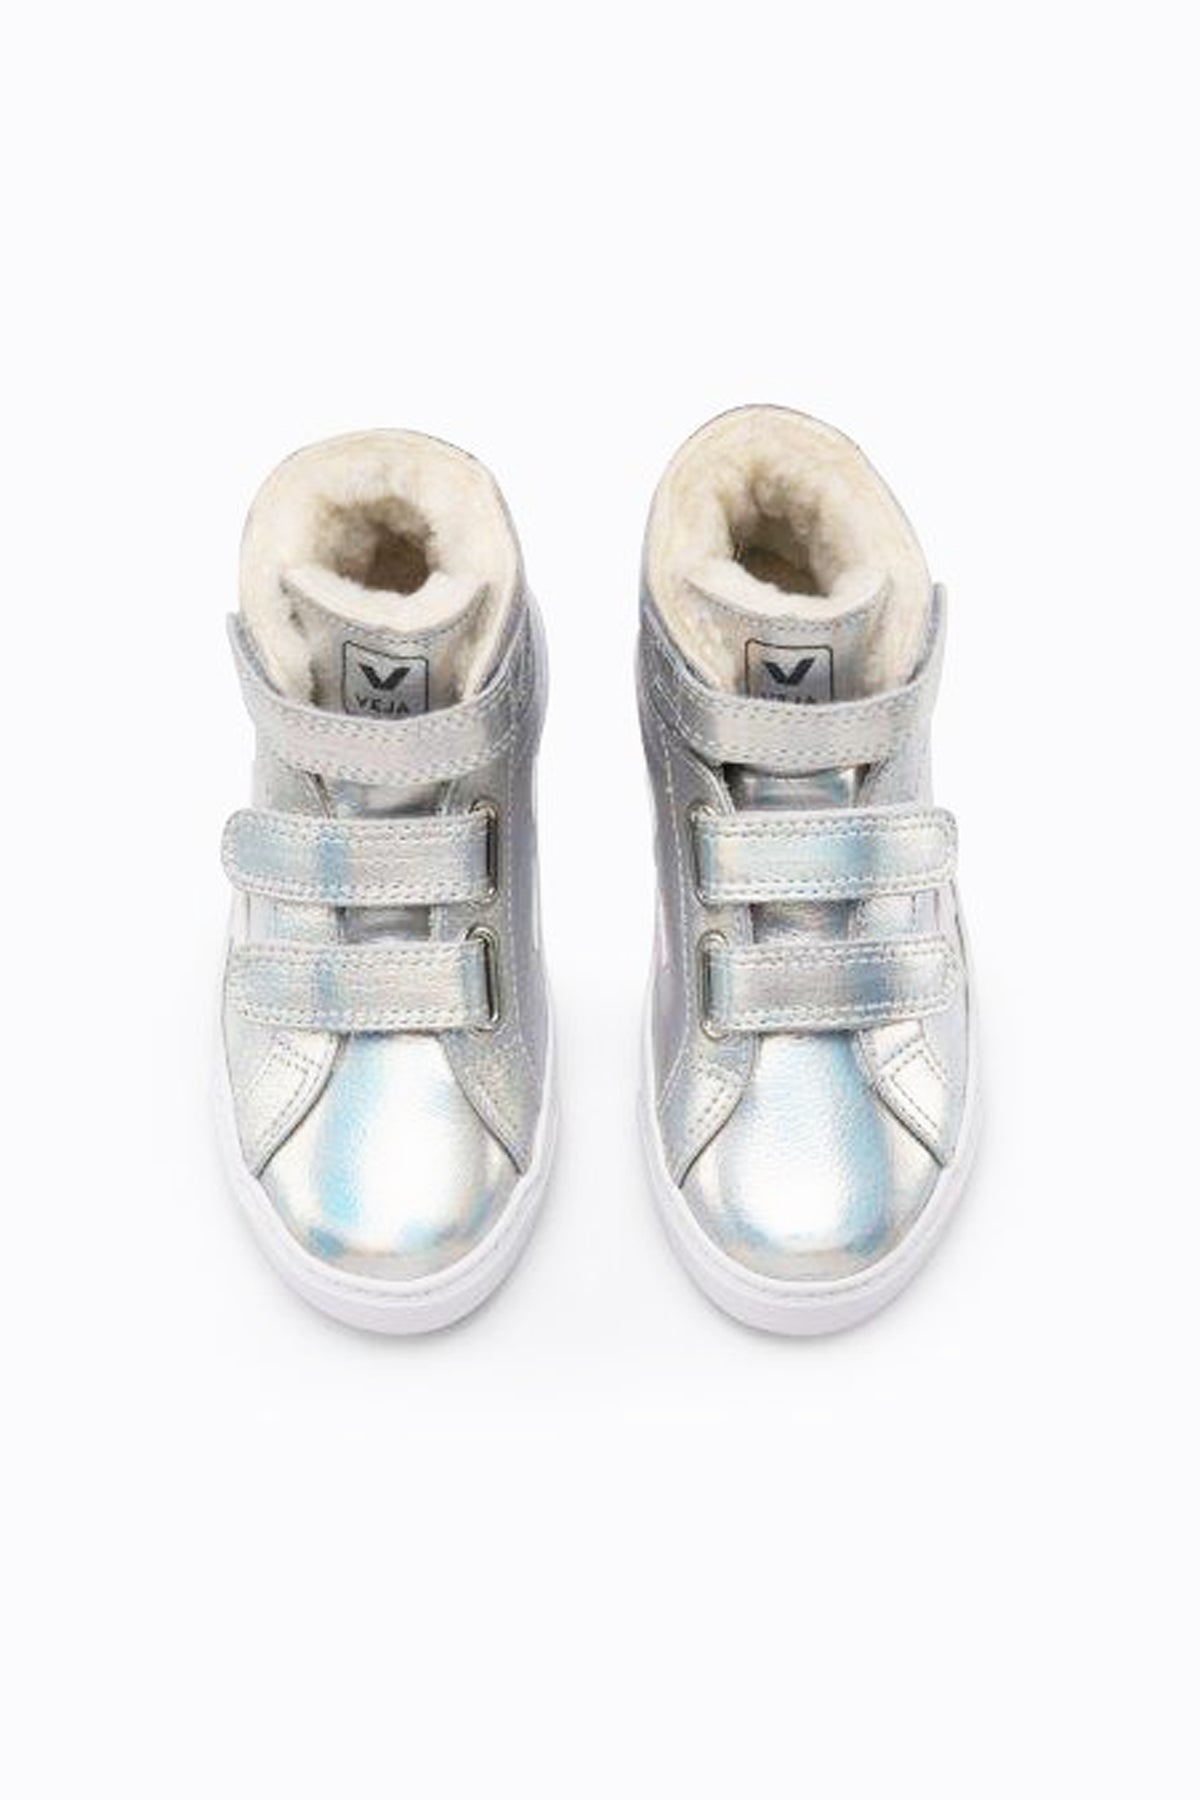 Veja Esplar Shearling High Top Kids Shoes - Unicorn White